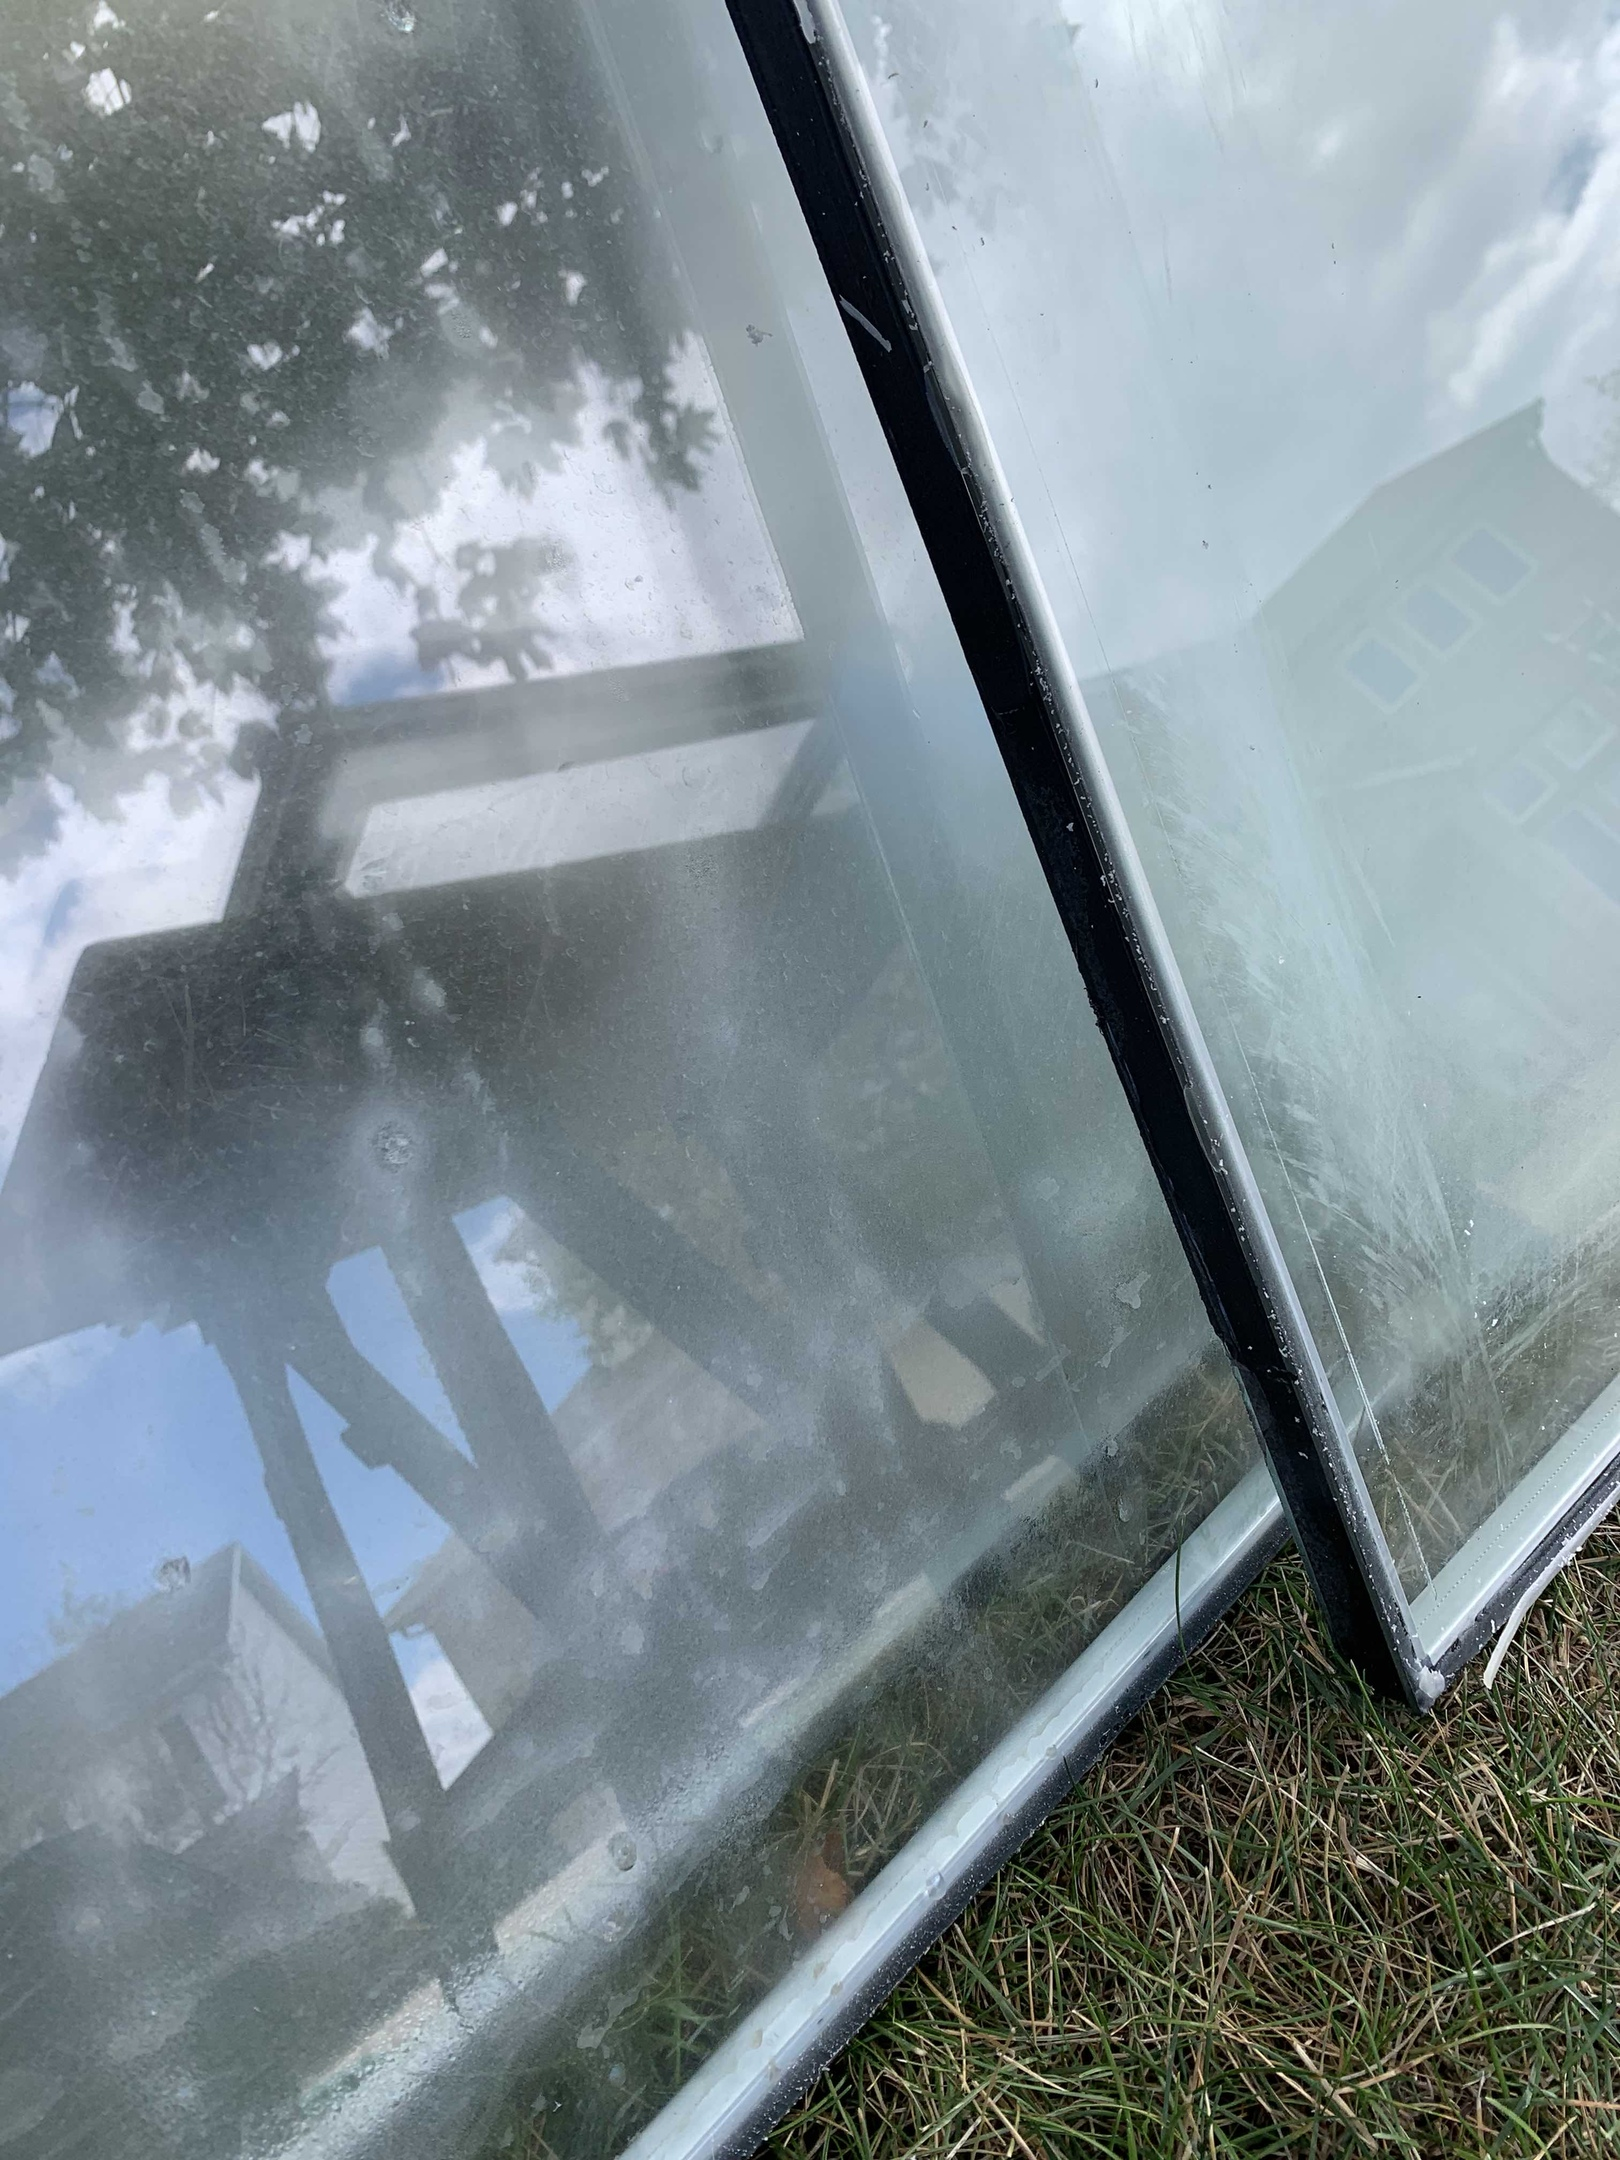 Foggy glass unit replacement